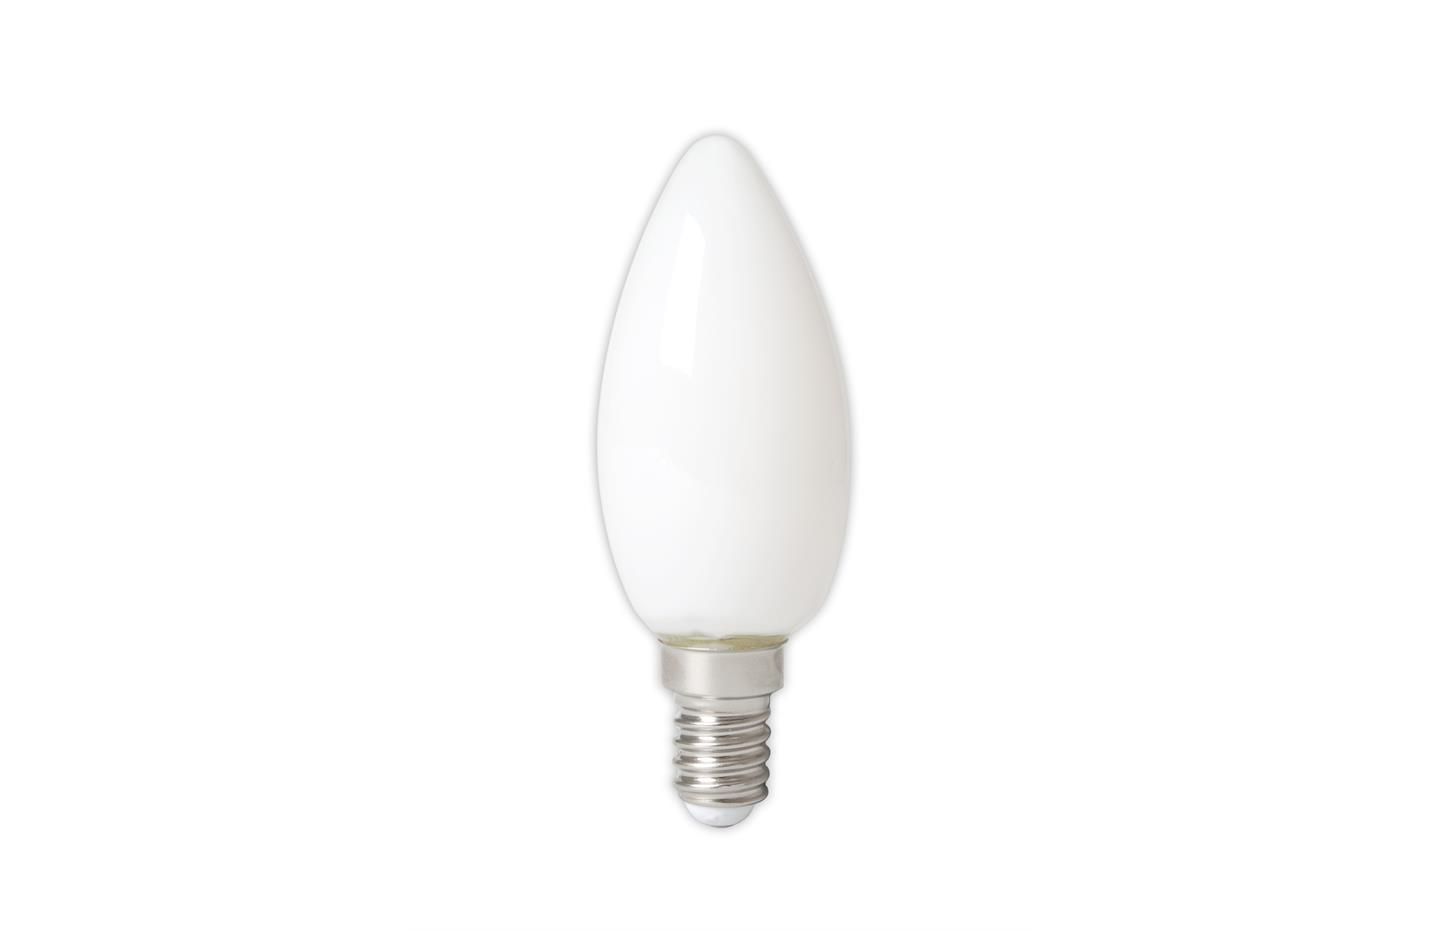 LED mignon softone dimbar 3,5W